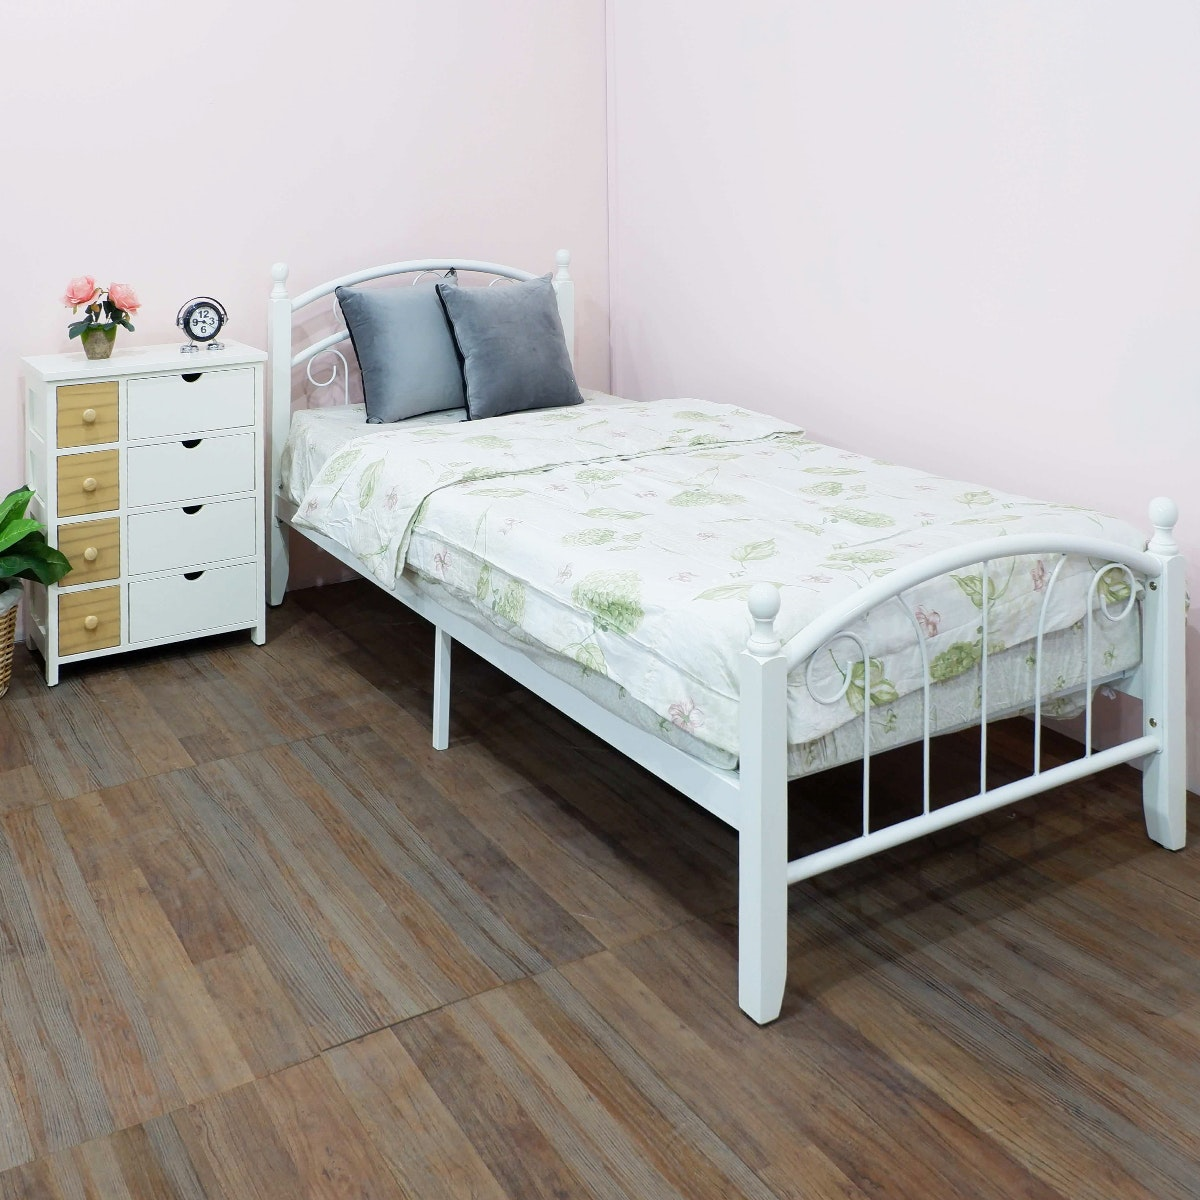 Olive House Ranjang Tempat Tidur Hamilton Single Bed - White